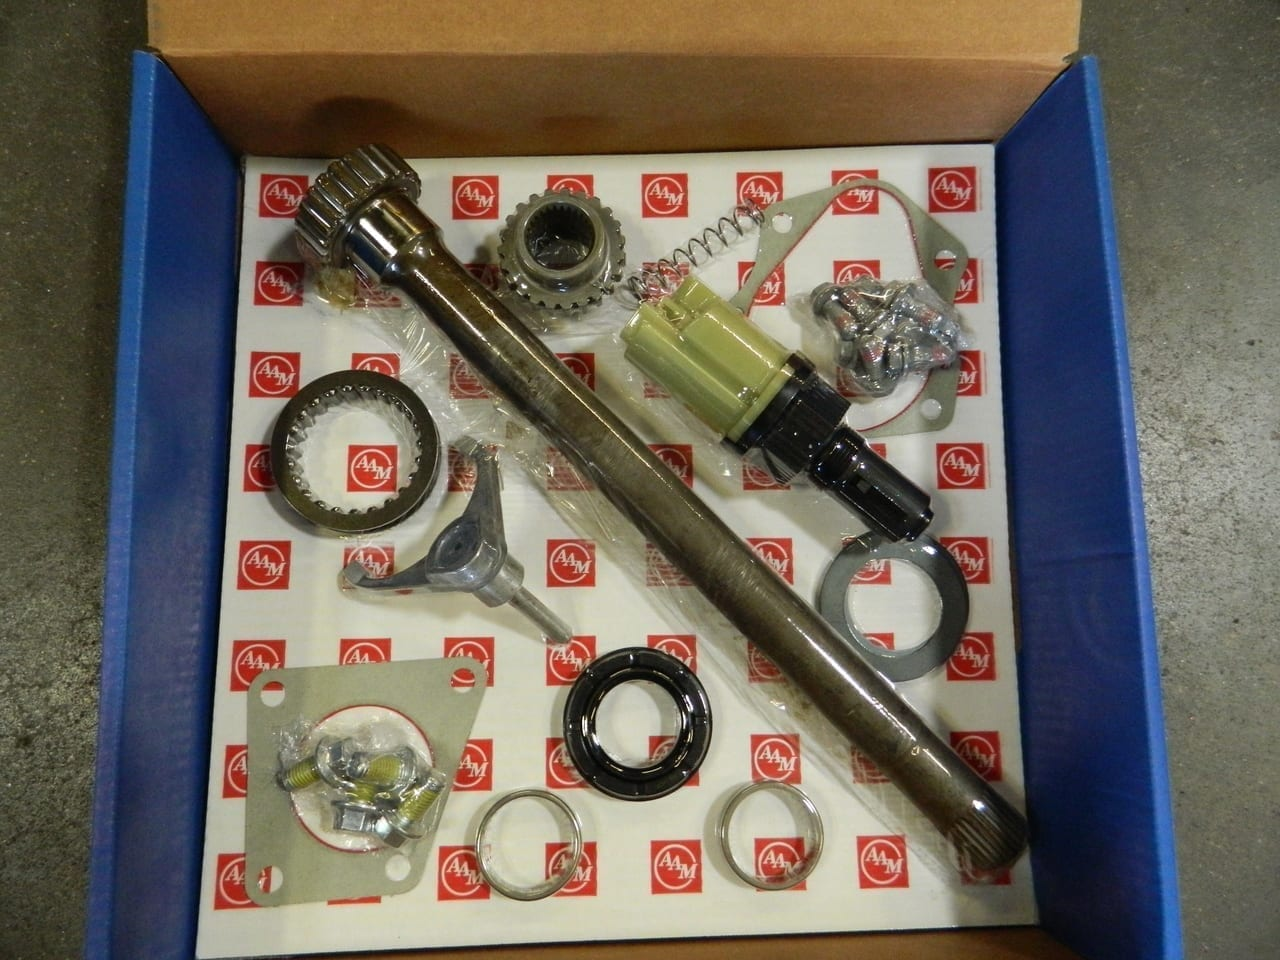 "OEM Disconnect Shifter Kit Front Axle 7.6"" IFS 2003-2012 Colorado Canyon Chevy GMC"